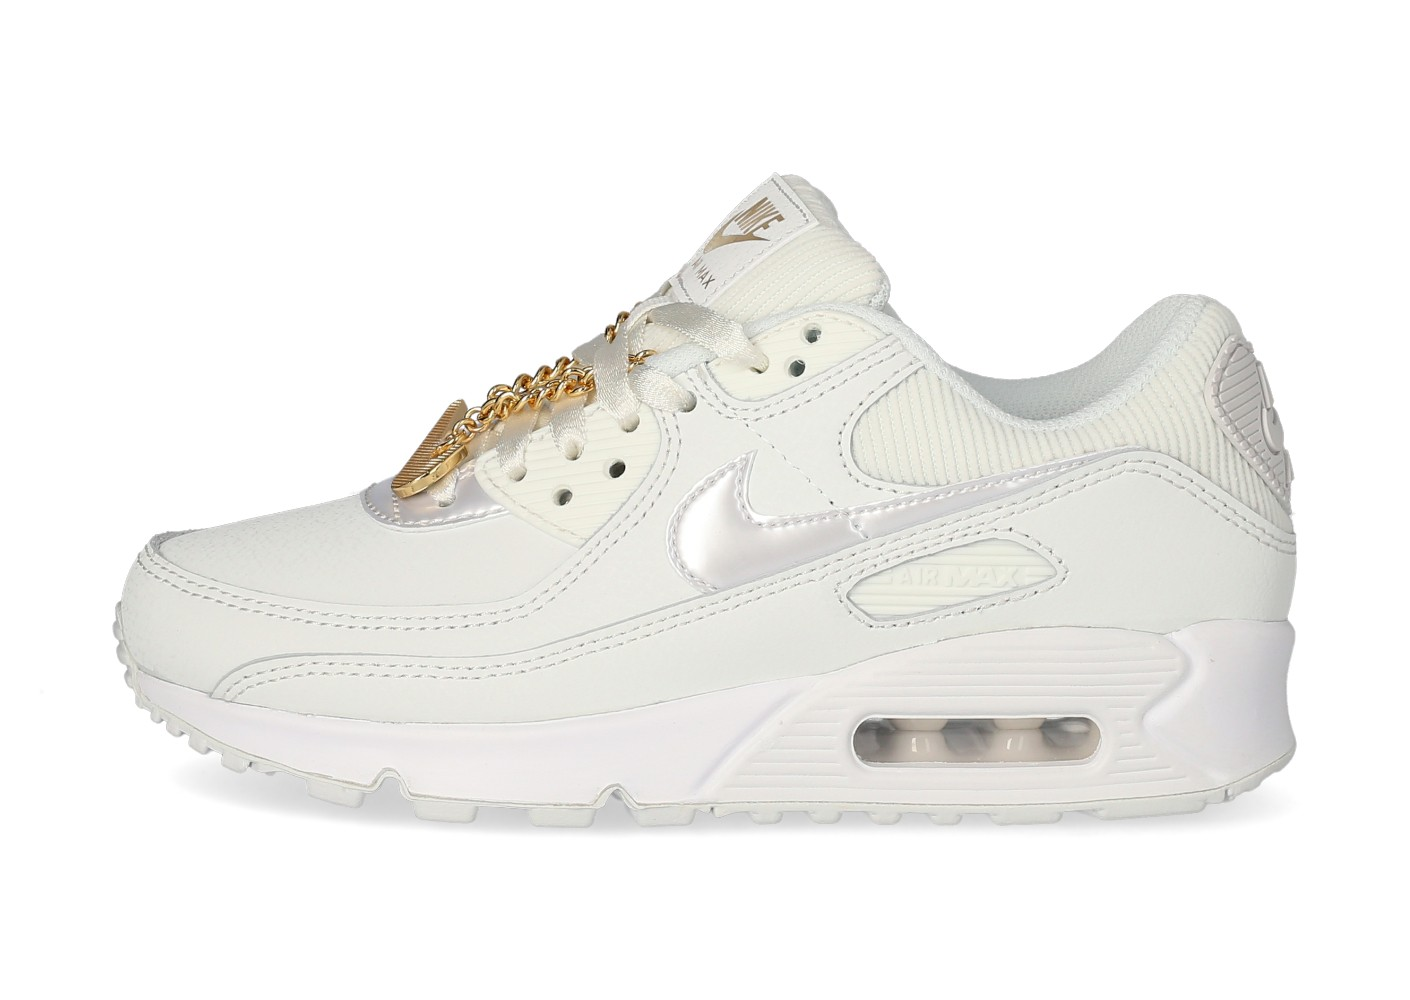 Nike Air Max 90 Femme blanche et or - Chaussures Prix stylés ...